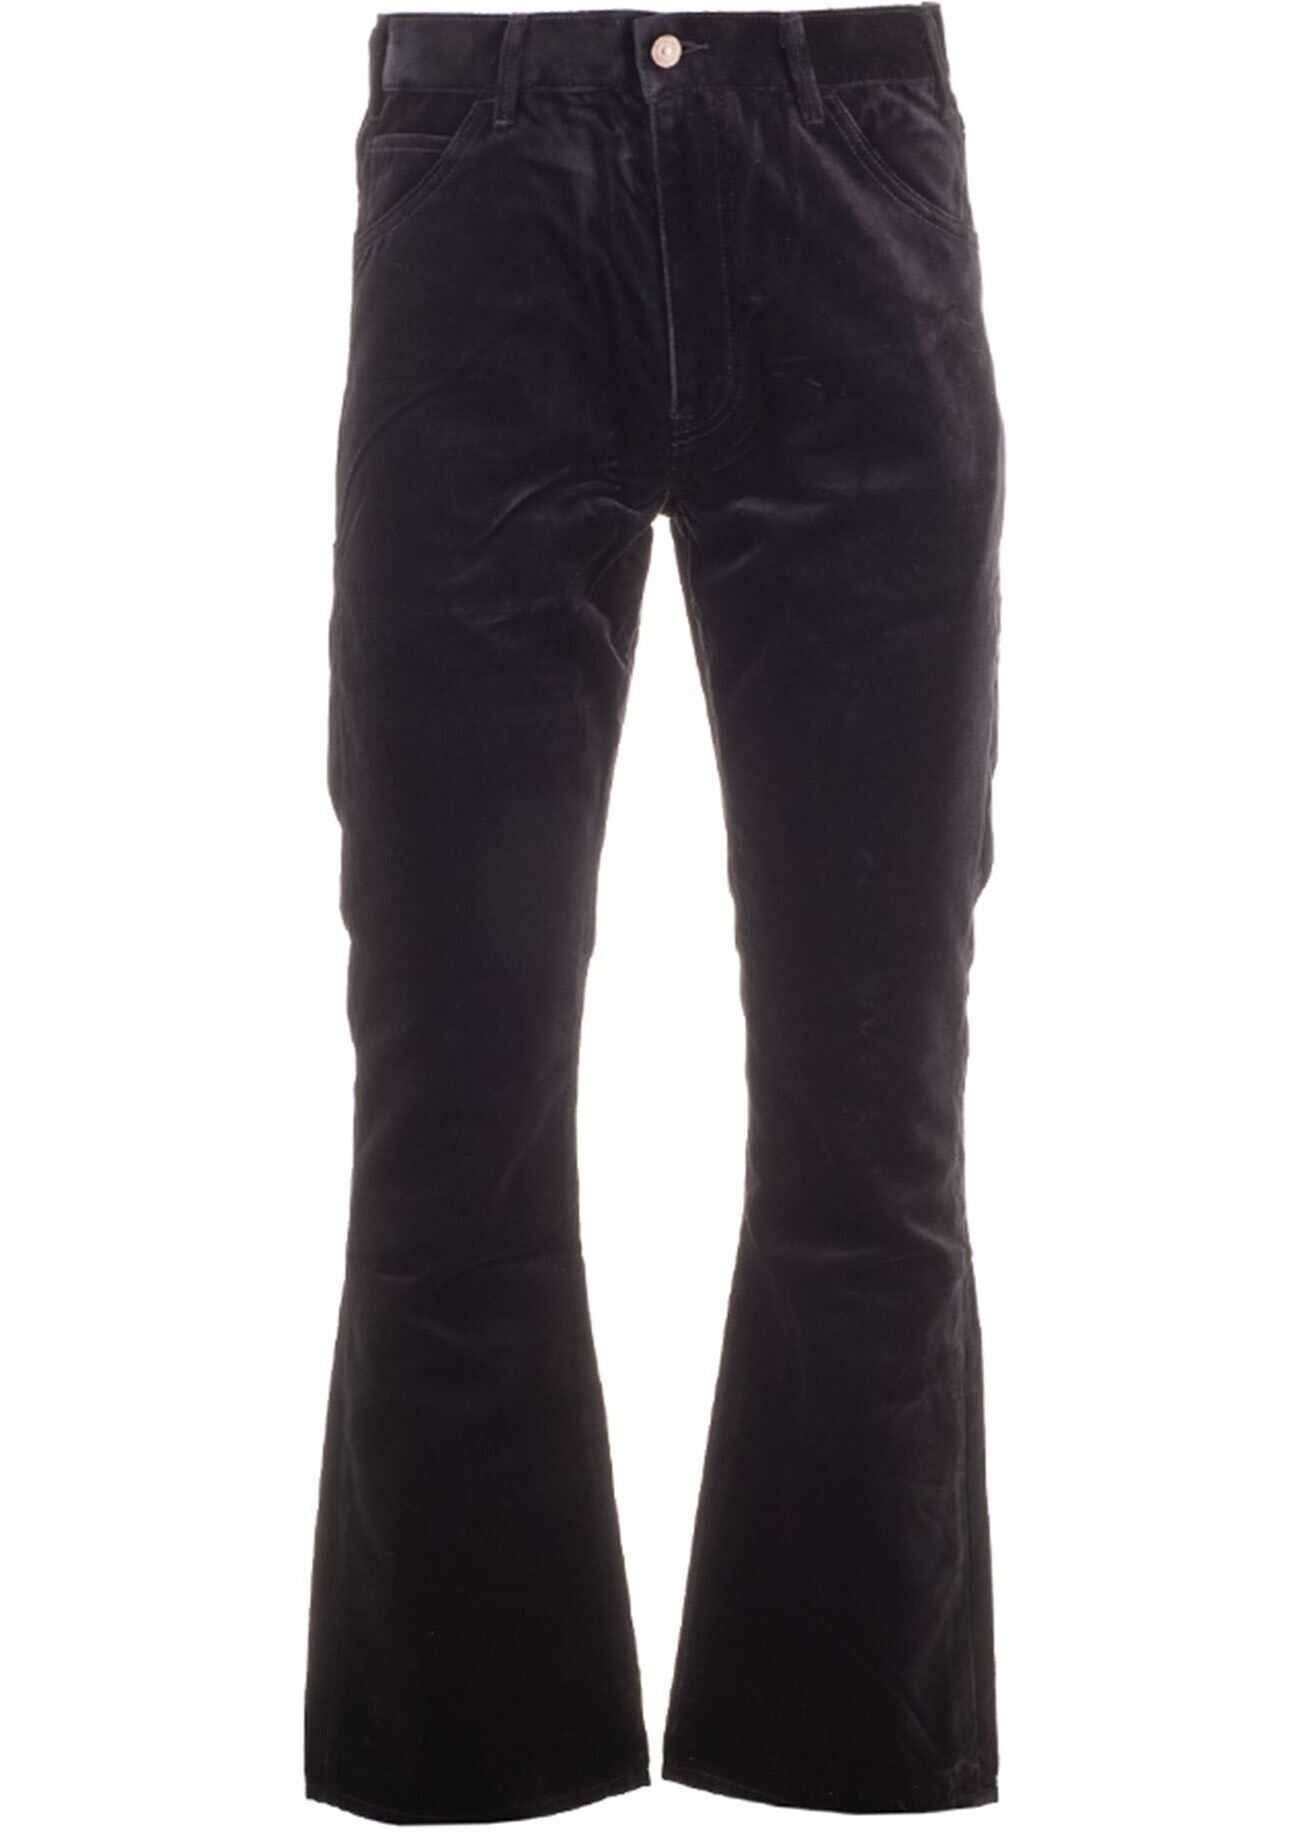 Céline Flared Jeans In Black Black imagine